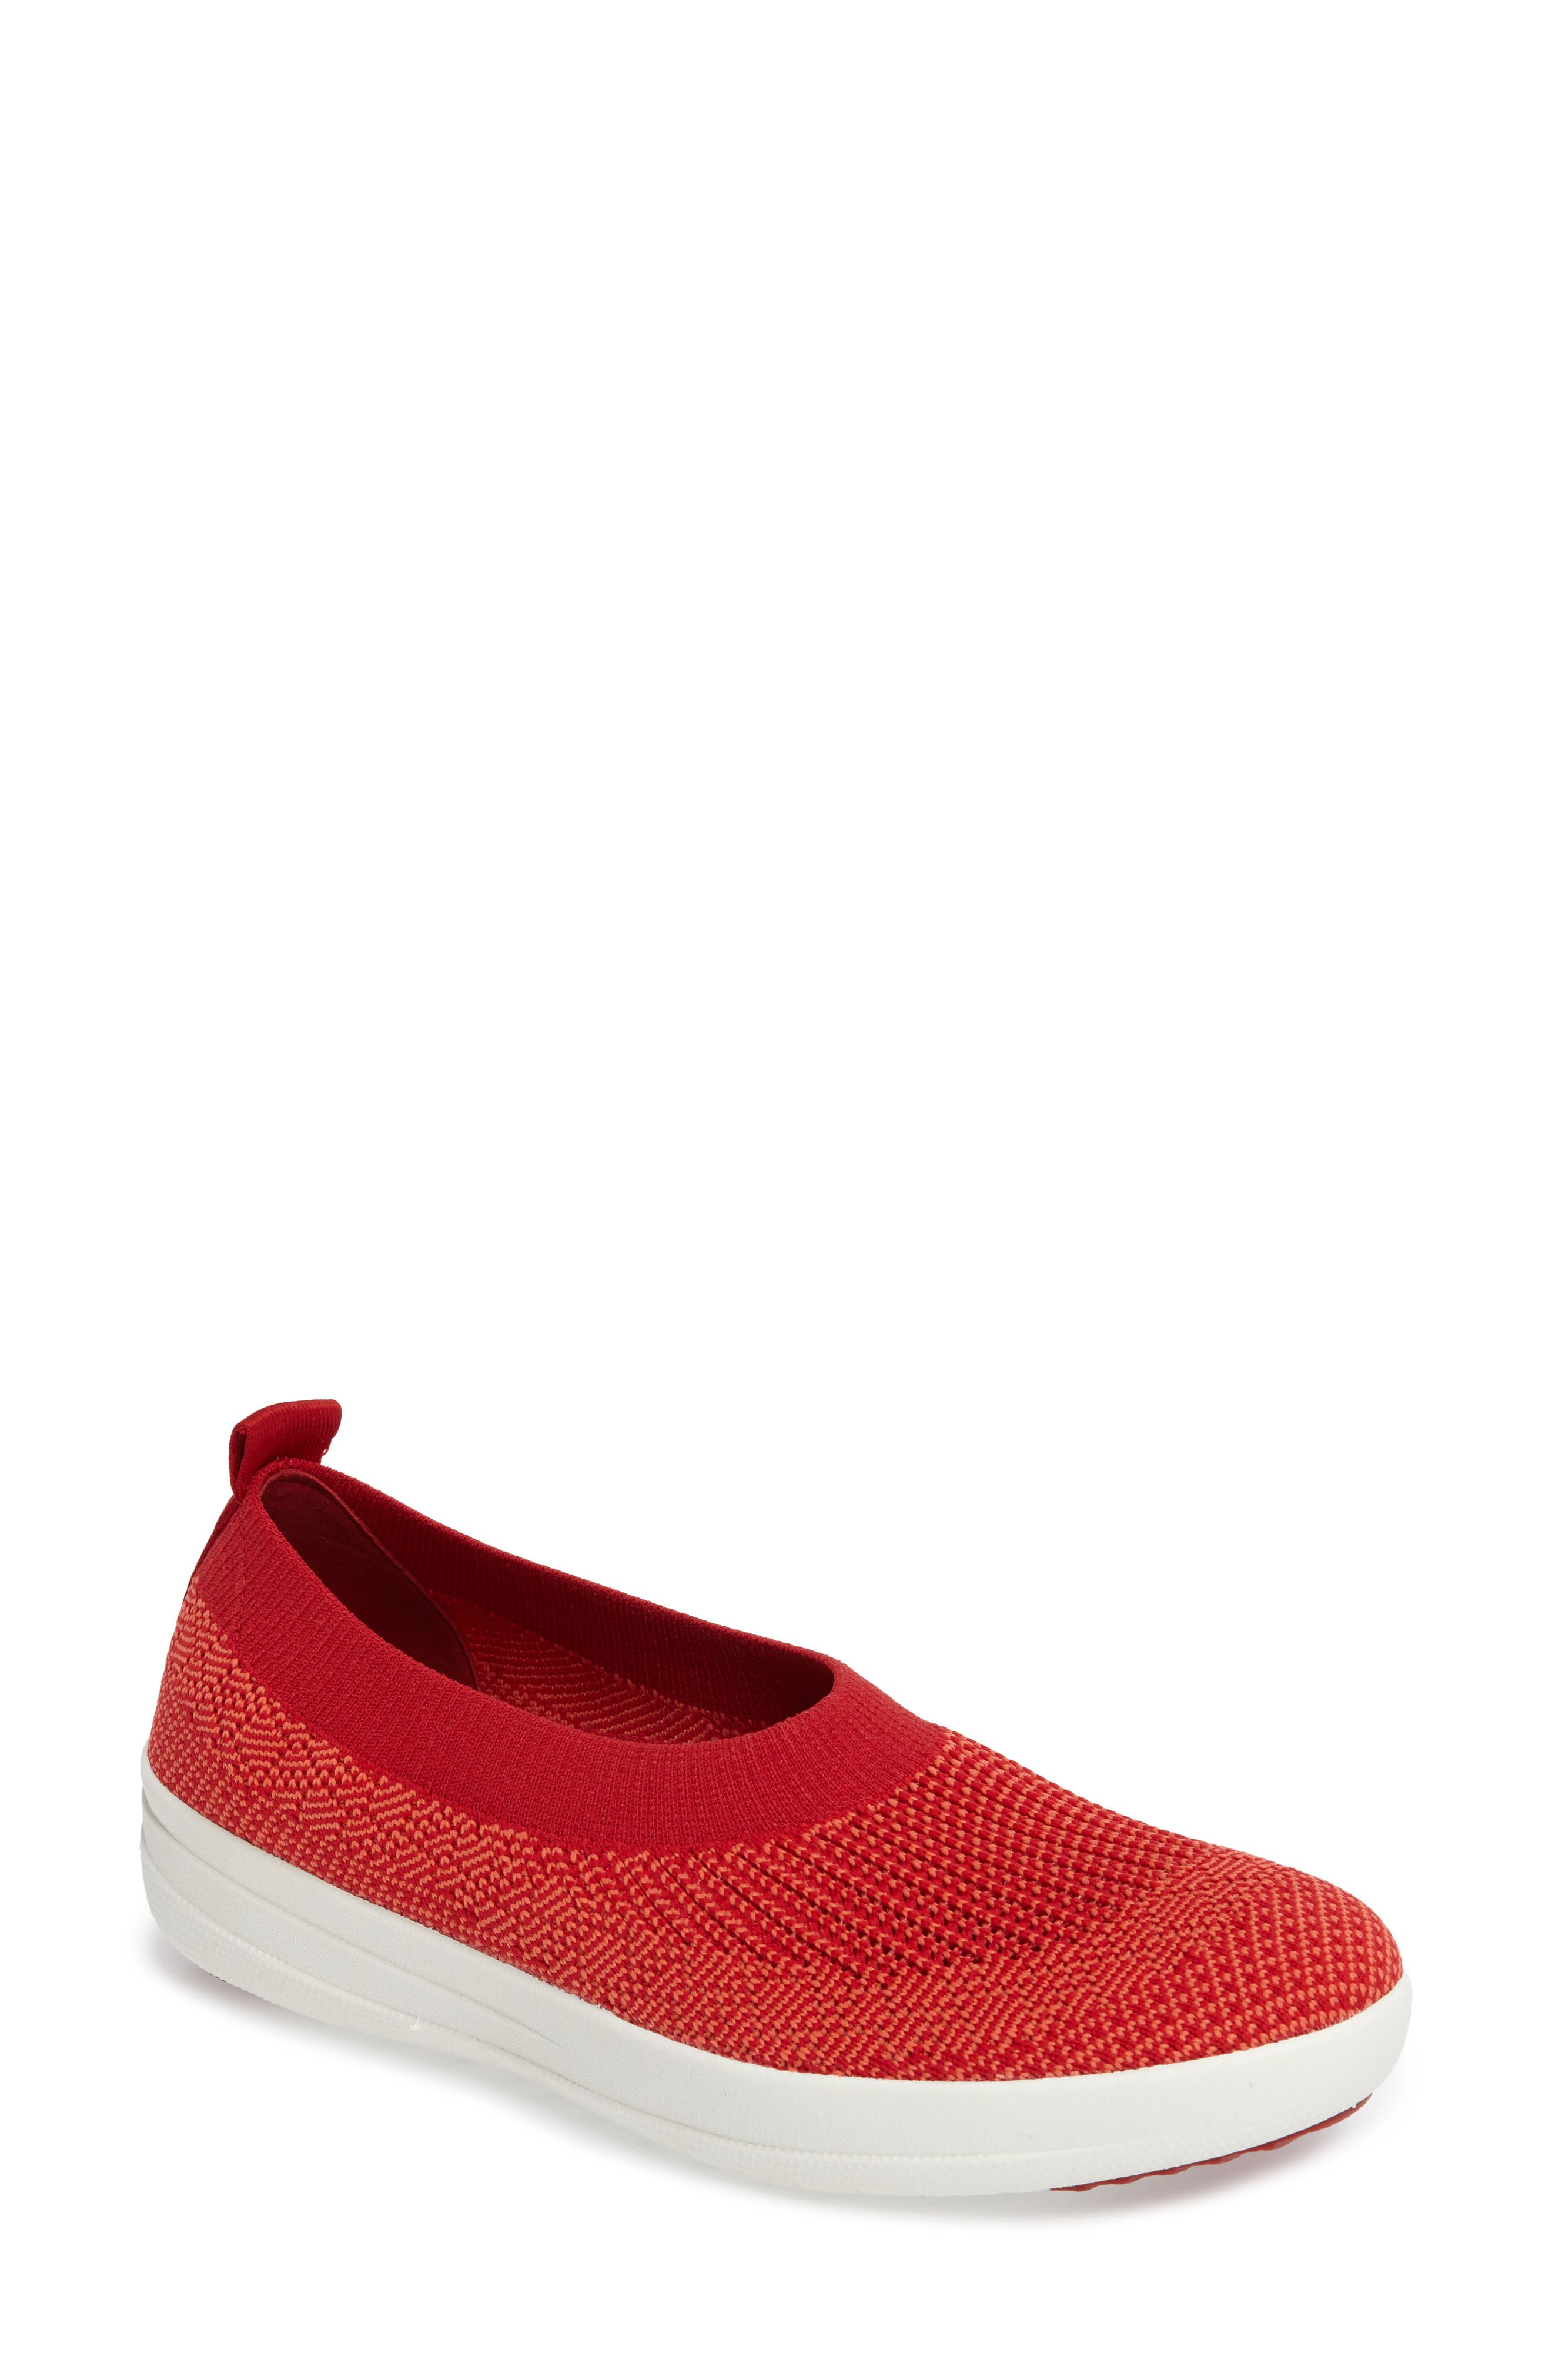 FitFlop Uberknit Slip-On Sneaker (Women)